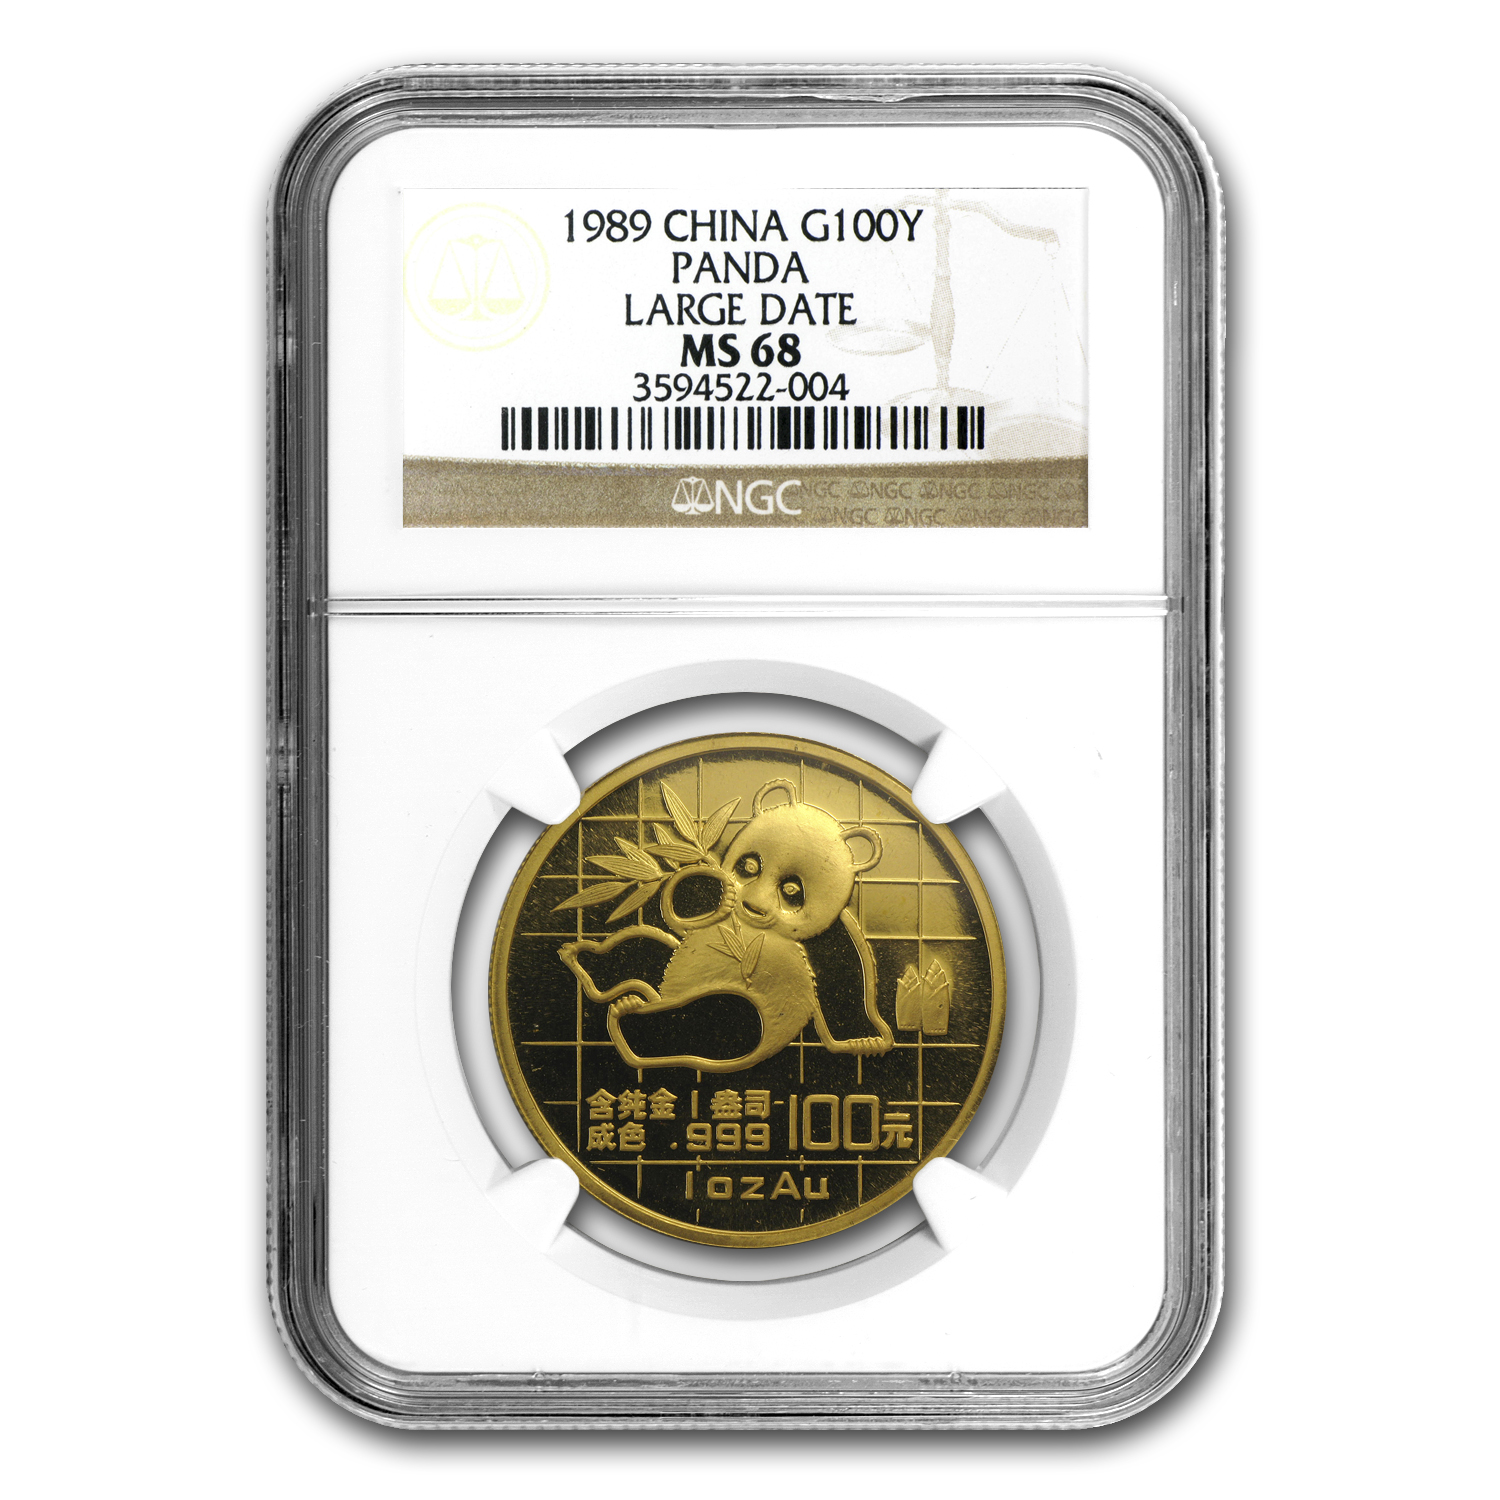 1989 1 oz Gold Chinese Panda Large Date MS-68 NGC